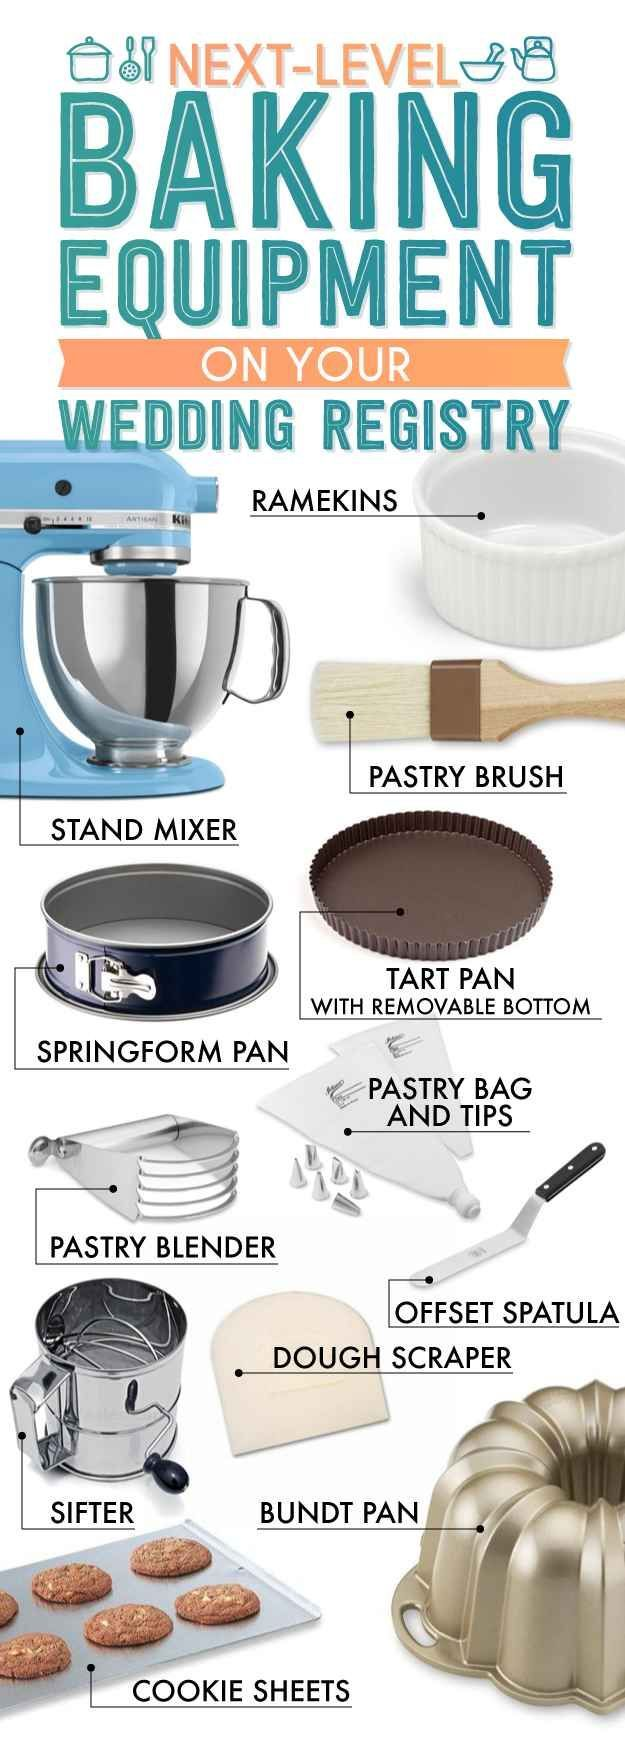 Level Up Baking EquipmentThe Essential Wedding Registry Checklist